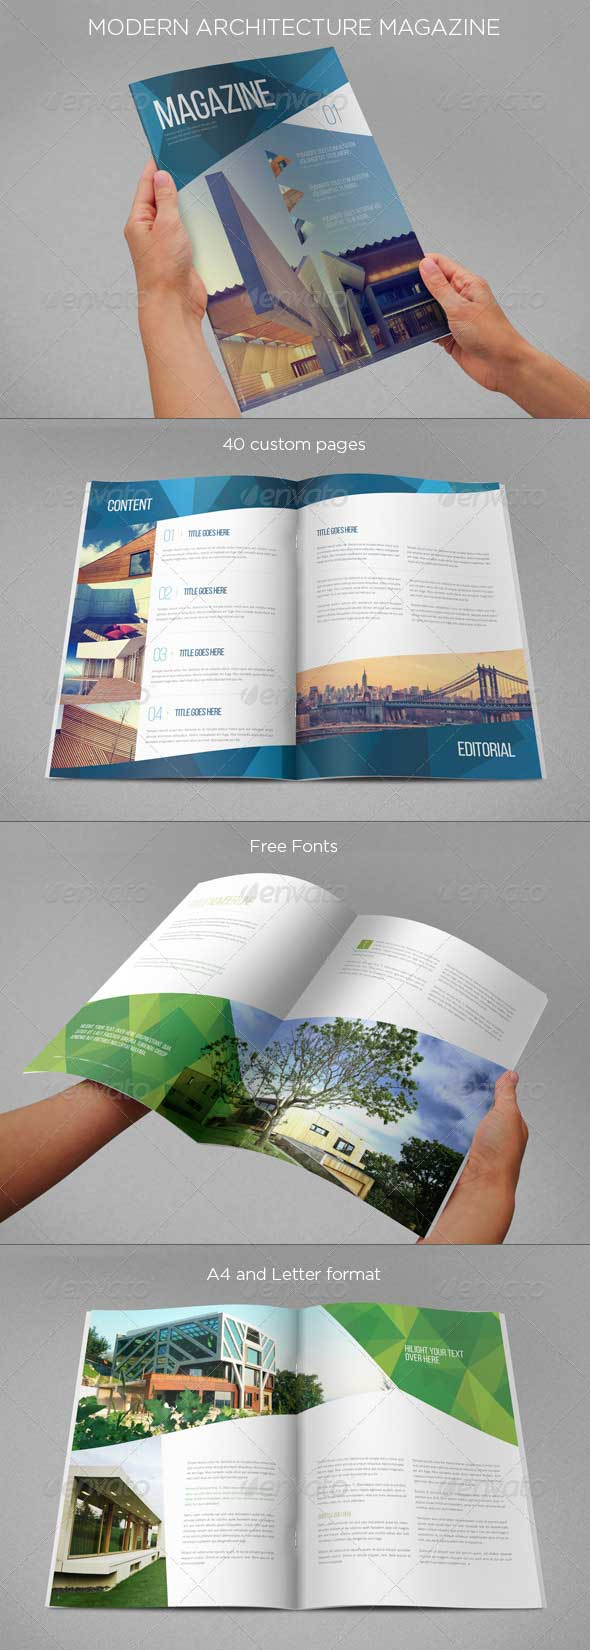 modern-architecture-magazine-template